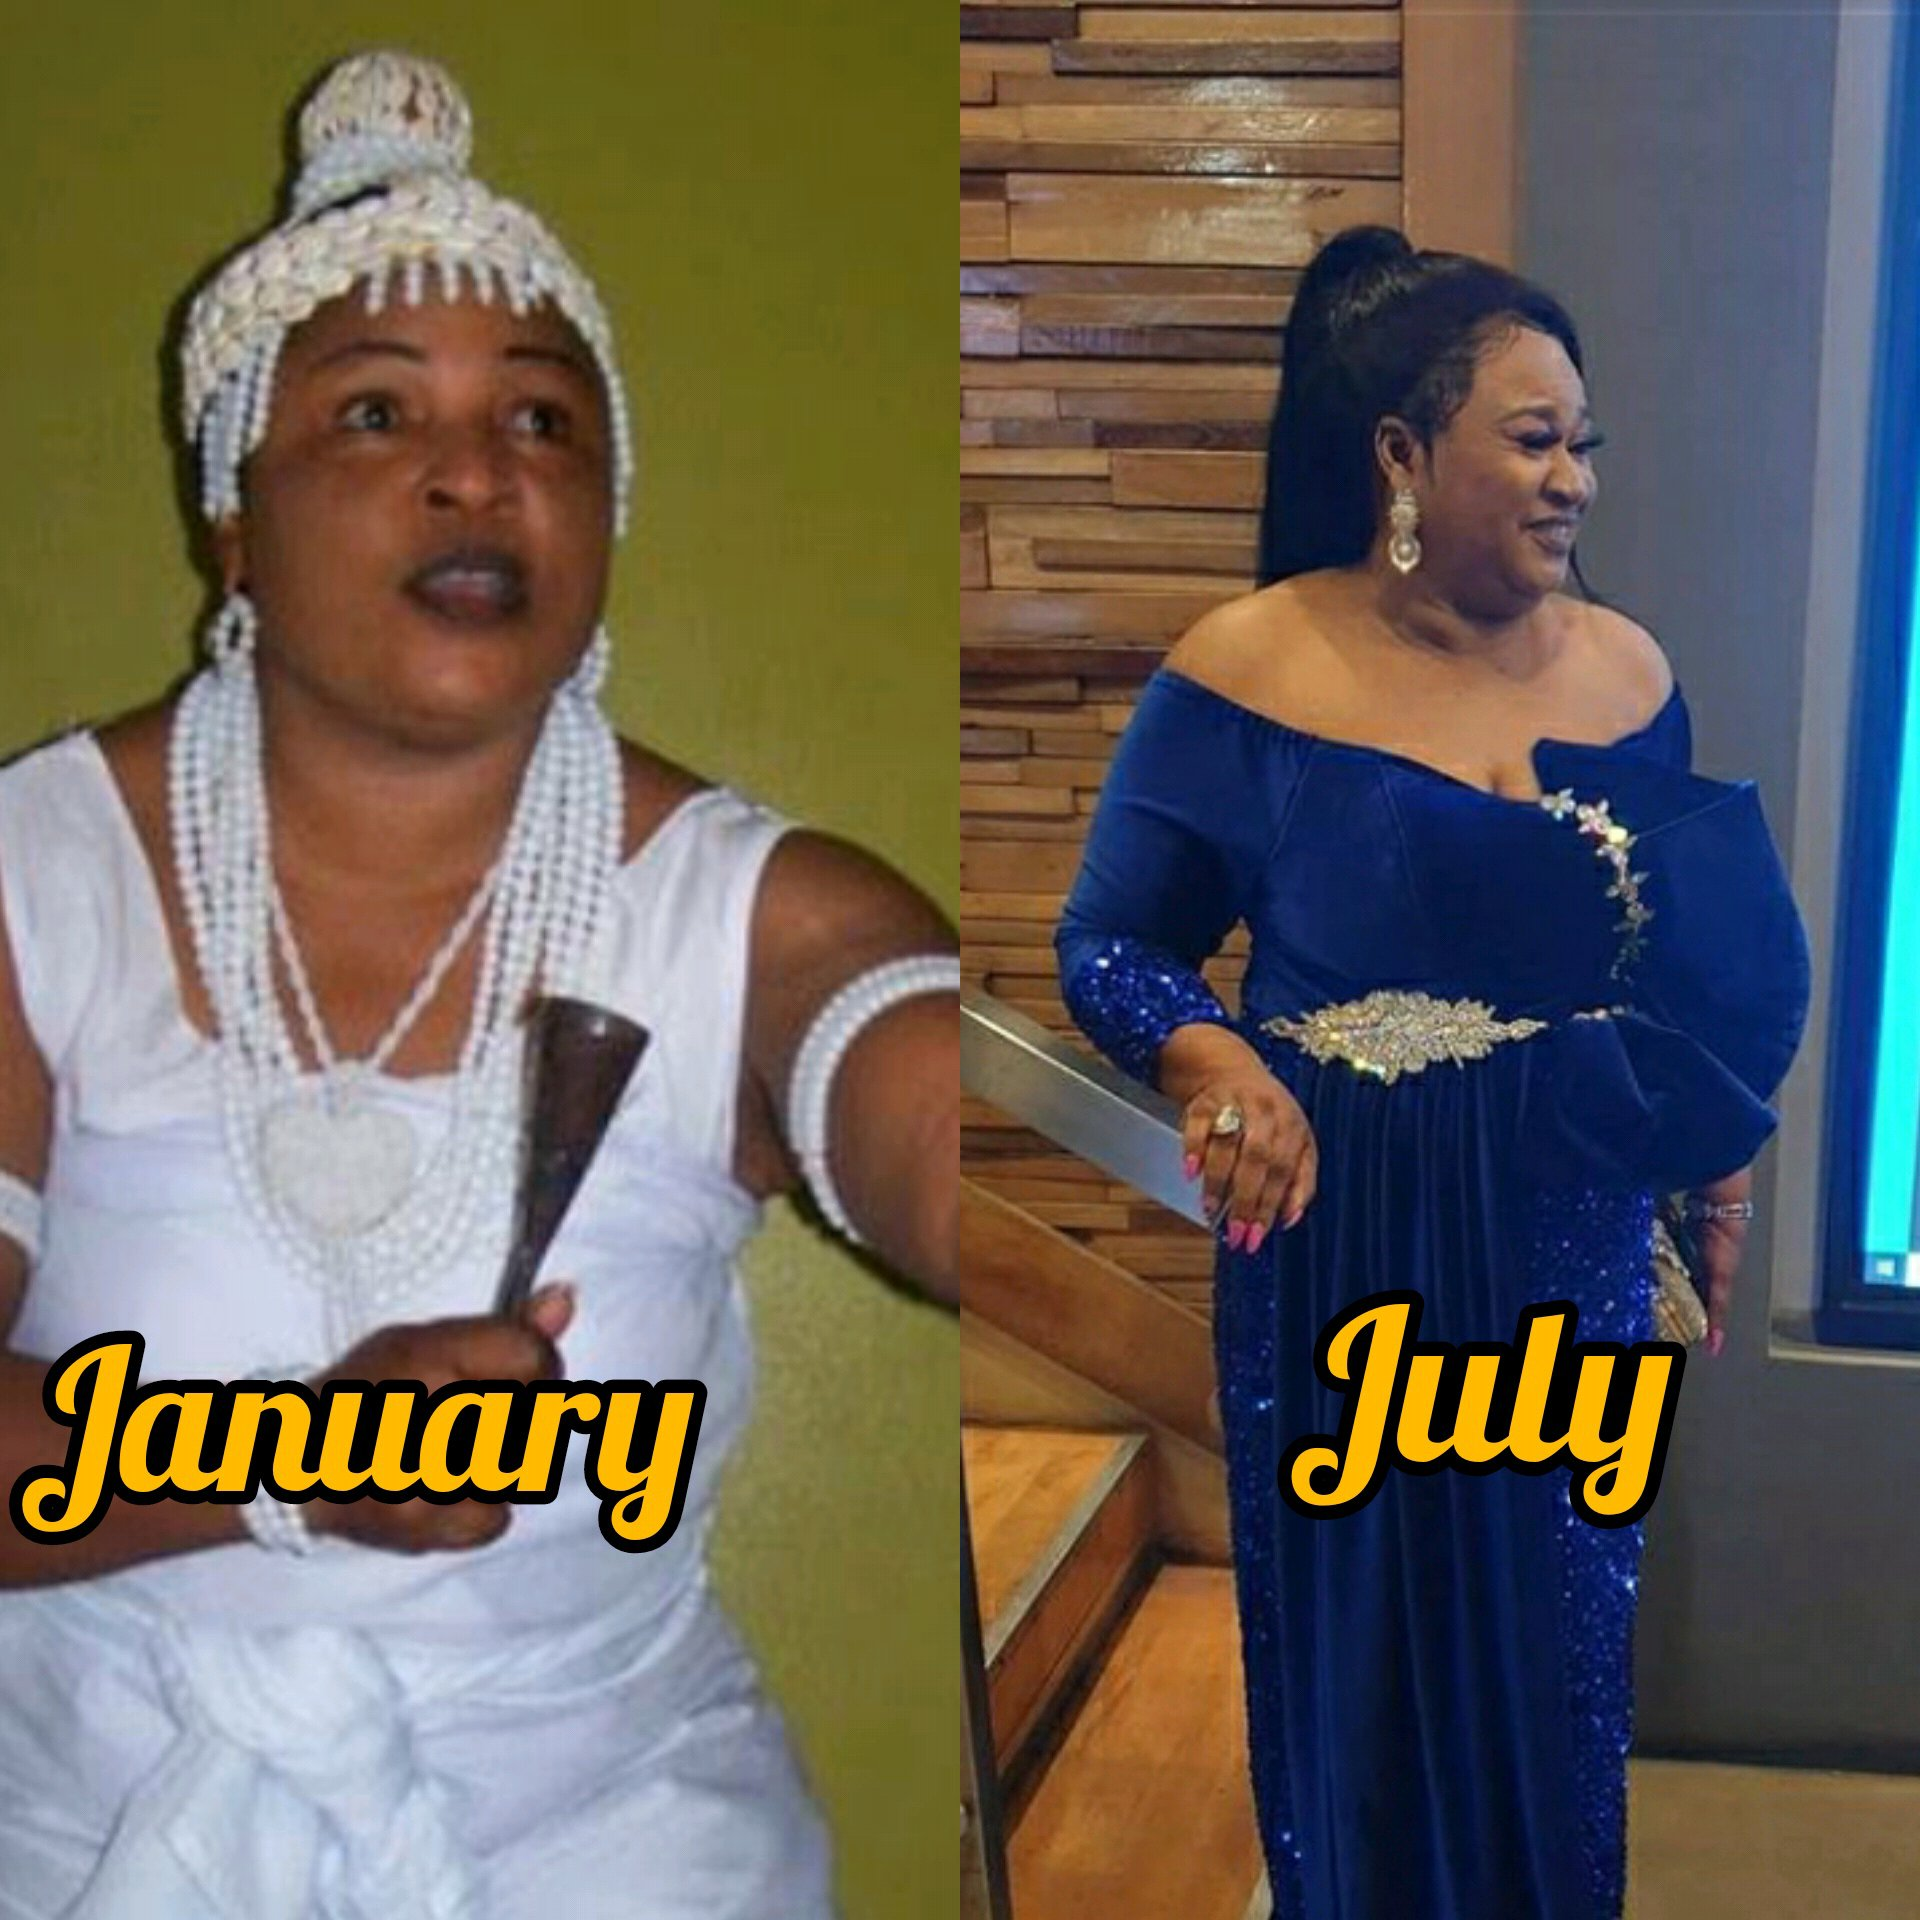 Between January & July 2021, Nollywood Lost 11 Actors; See Their Names, Causes Of Their Deaths